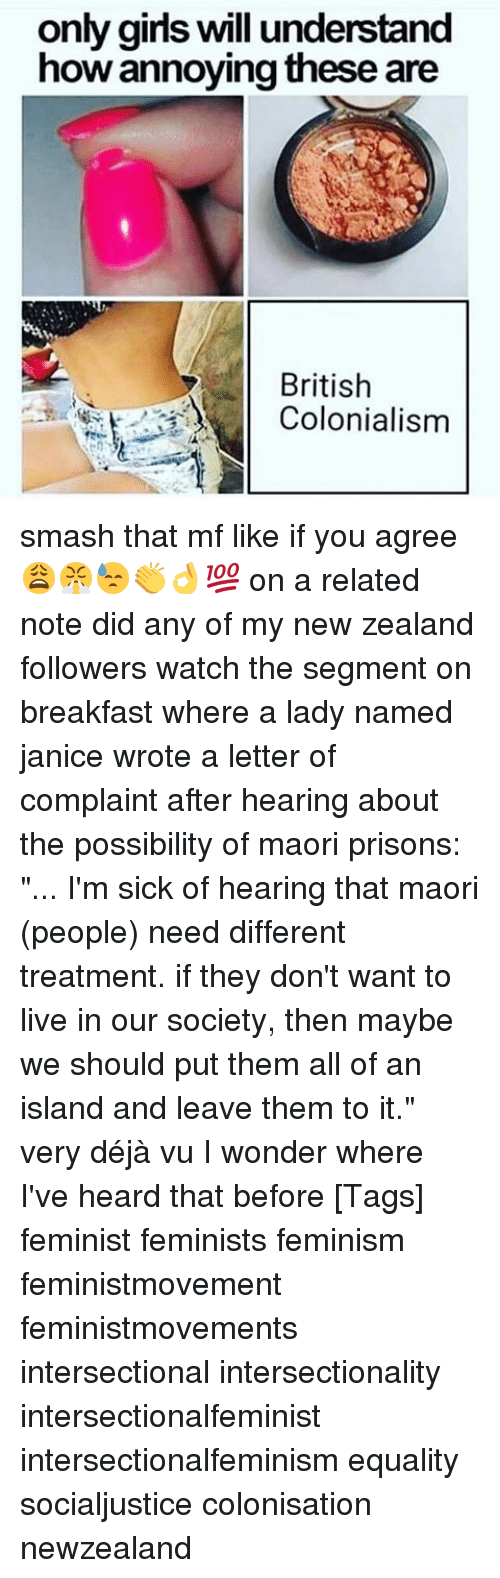 "Feminism, Girls, and Memes: only girls will understand  how annoying these are  British  Colonialism smash that mf like if you agree 😩😤😓👏👌💯 on a related note did any of my new zealand followers watch the segment on breakfast where a lady named janice wrote a letter of complaint after hearing about the possibility of maori prisons: ""... I'm sick of hearing that maori (people) need different treatment. if they don't want to live in our society, then maybe we should put them all of an island and leave them to it."" very déjà vu I wonder where I've heard that before [Tags] feminist feminists feminism feministmovement feministmovements intersectional intersectionality intersectionalfeminist intersectionalfeminism equality socialjustice colonisation newzealand"